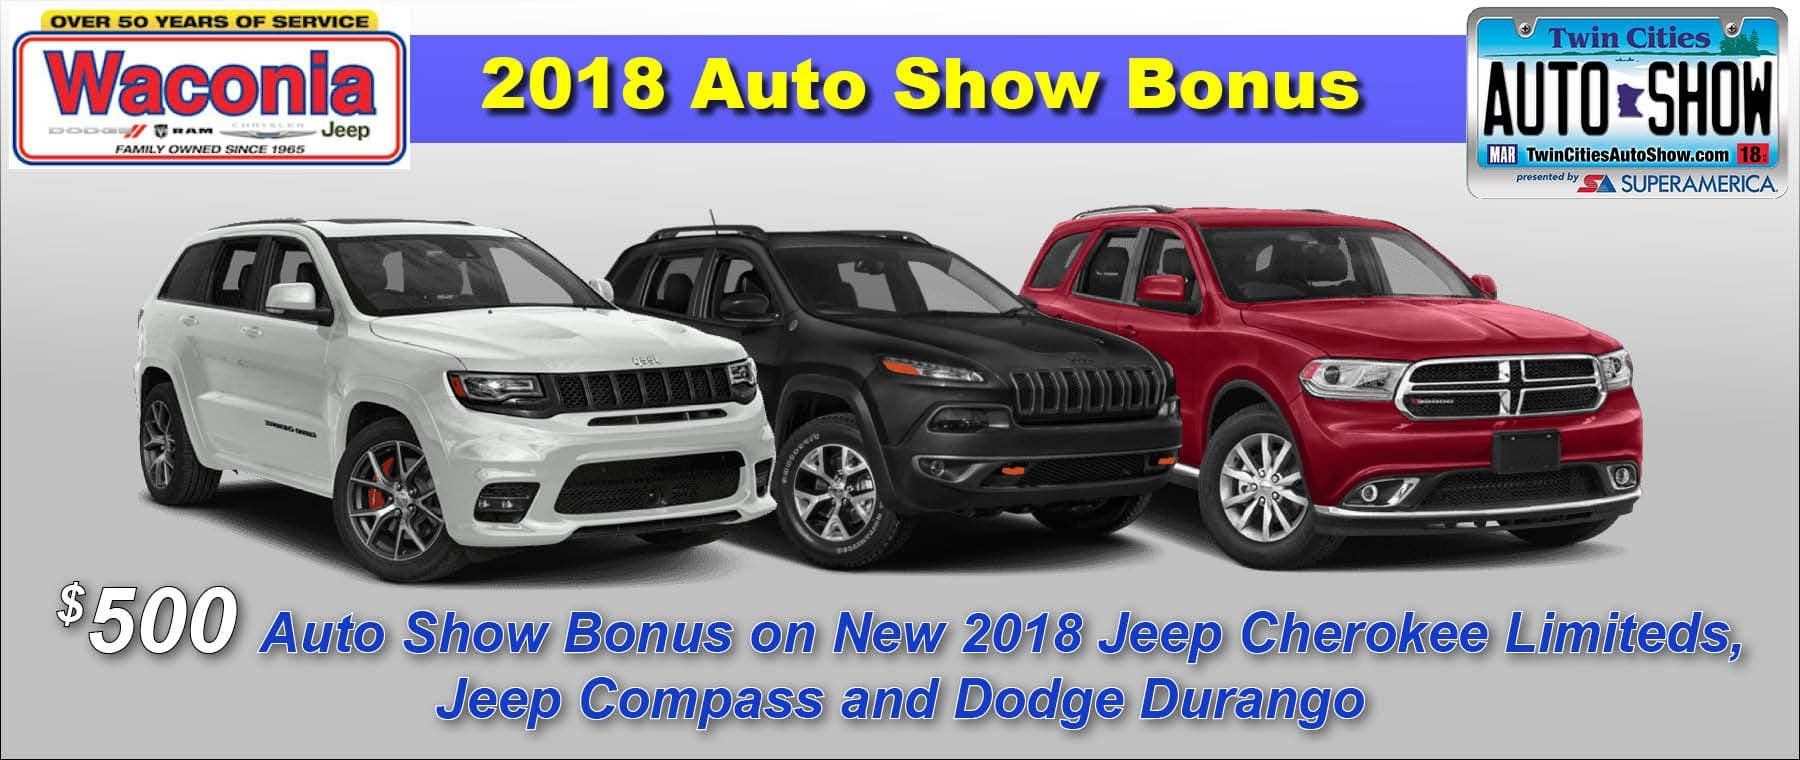 Waconia Dodge Chrysler Jeep Ram In 2020 Jeep Chrysler Jeep Vw